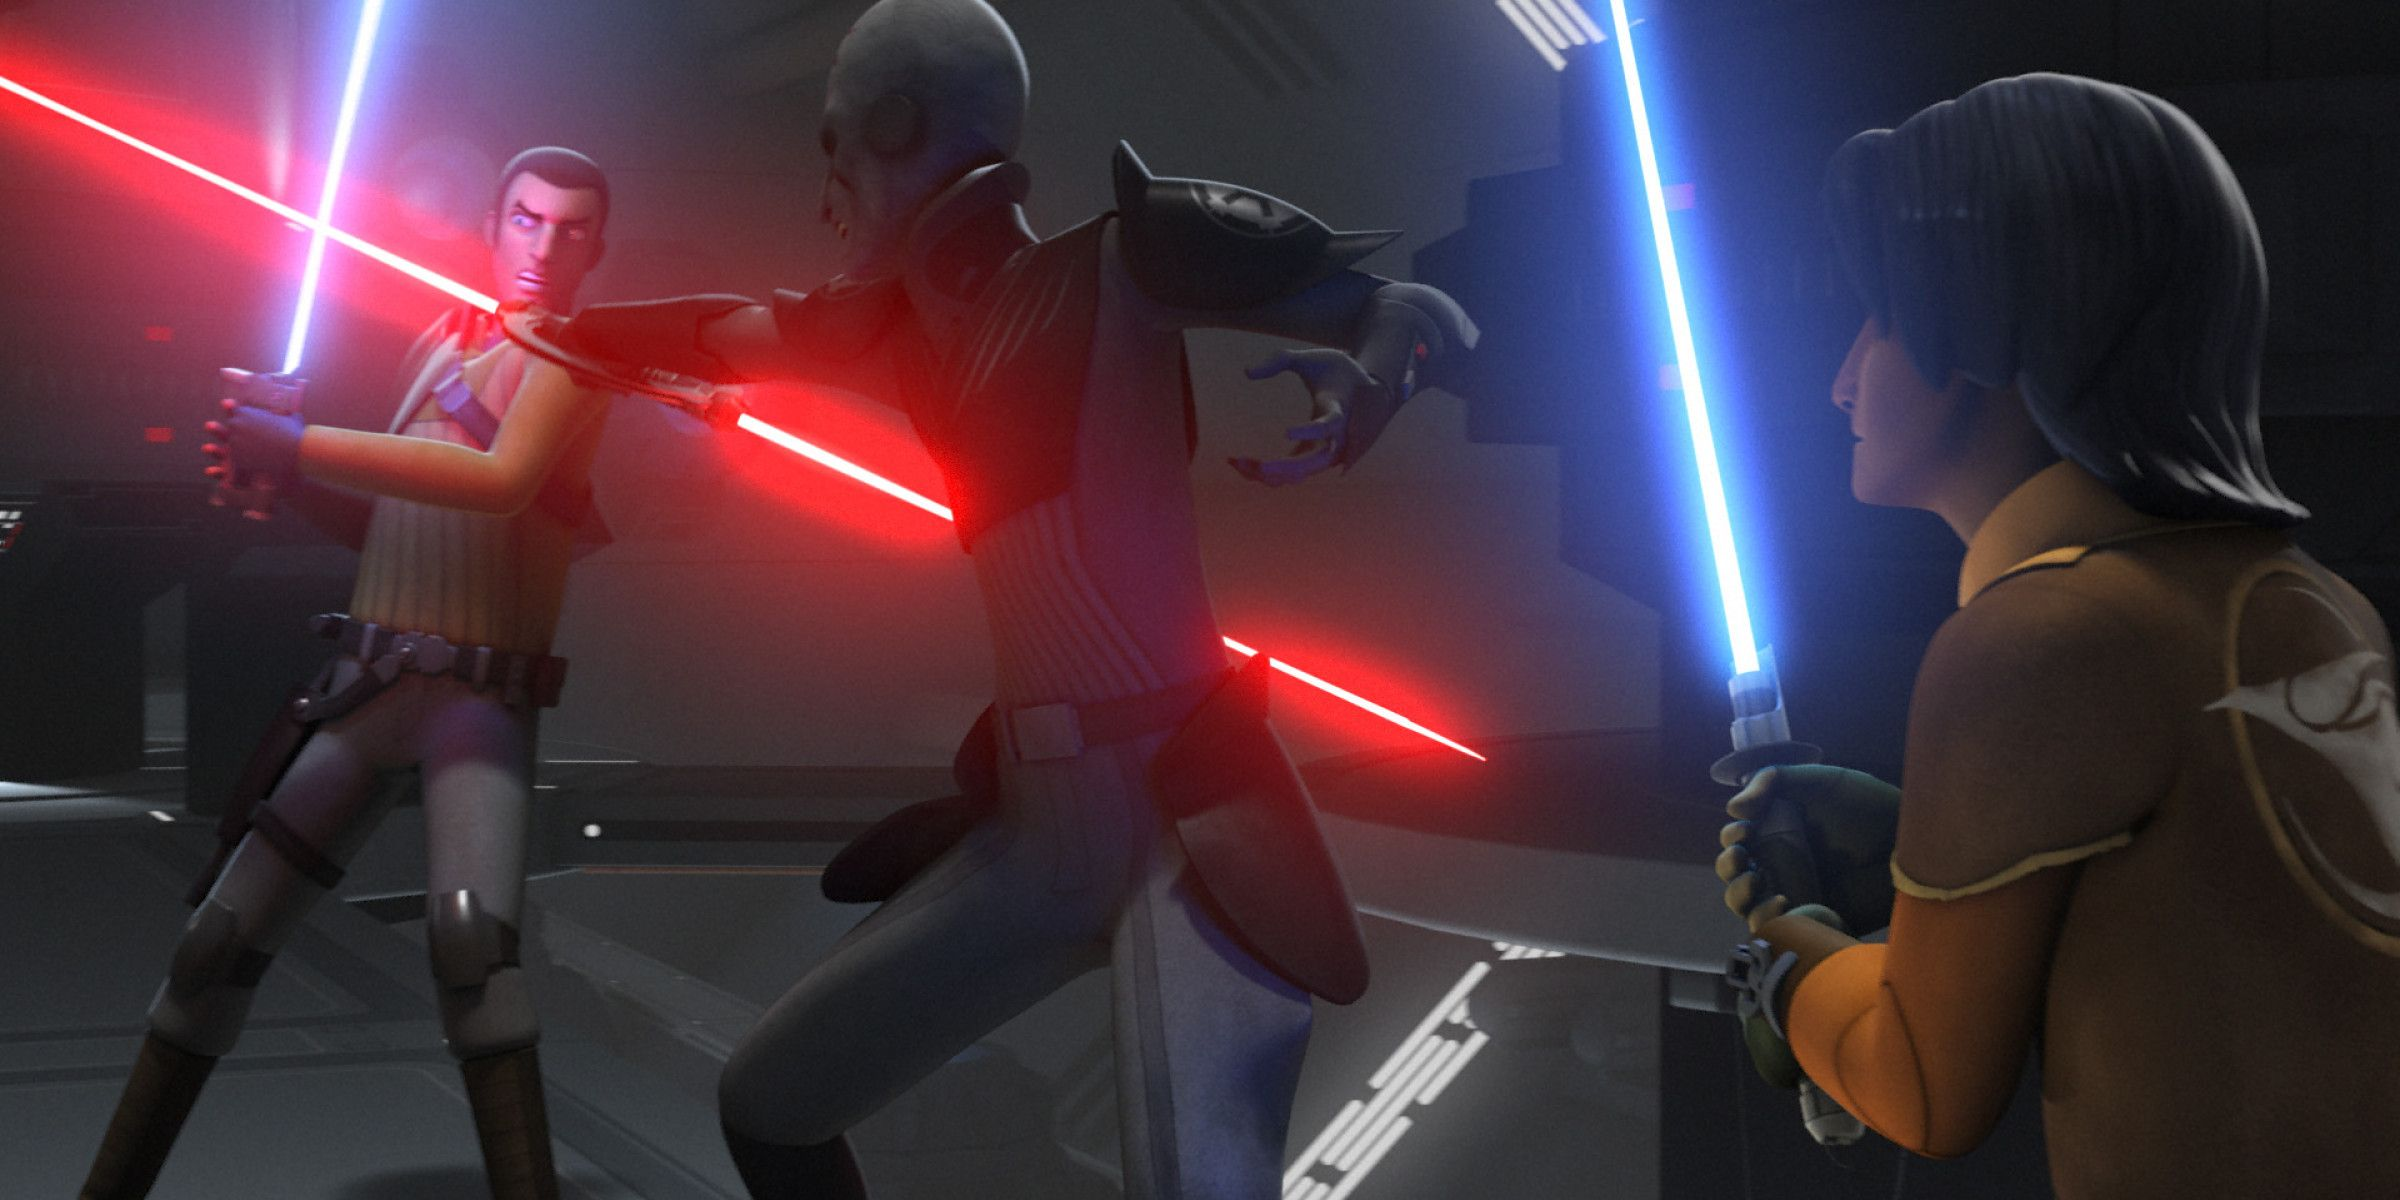 Beau Dessin à Imprimer Star Wars Rebels